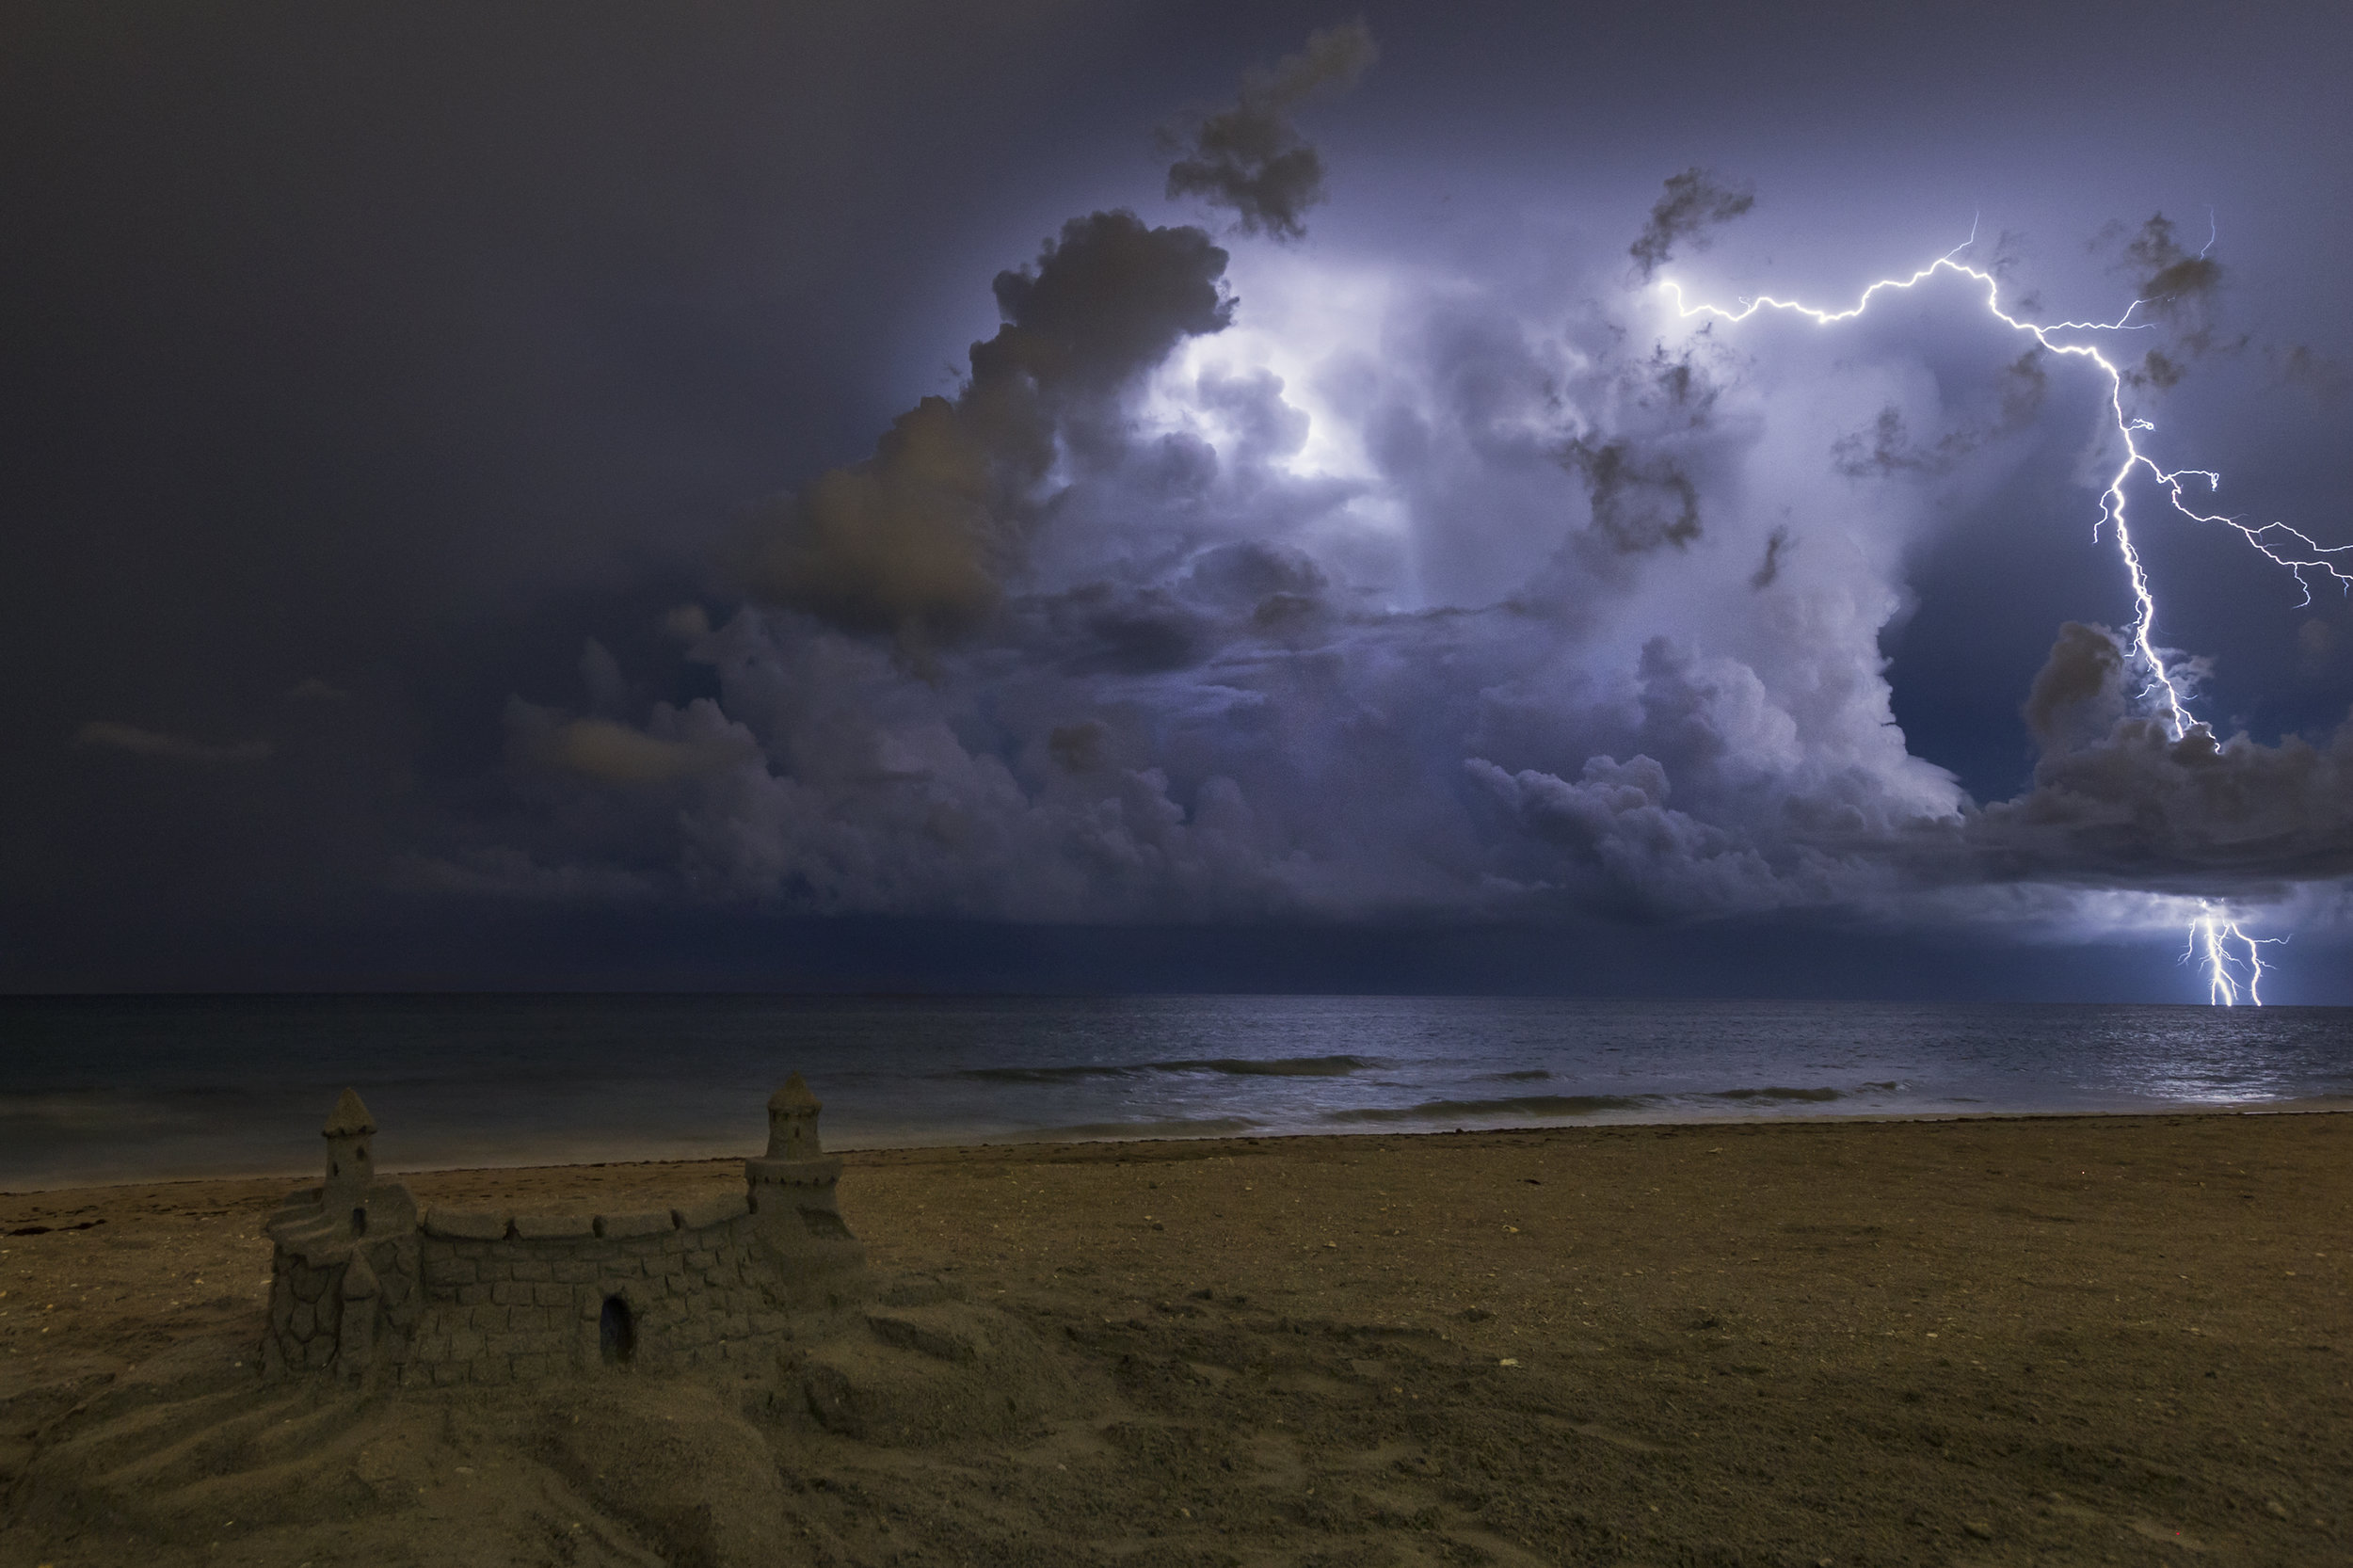 Thunderstorm off the coast of Palm Beach, Florida.